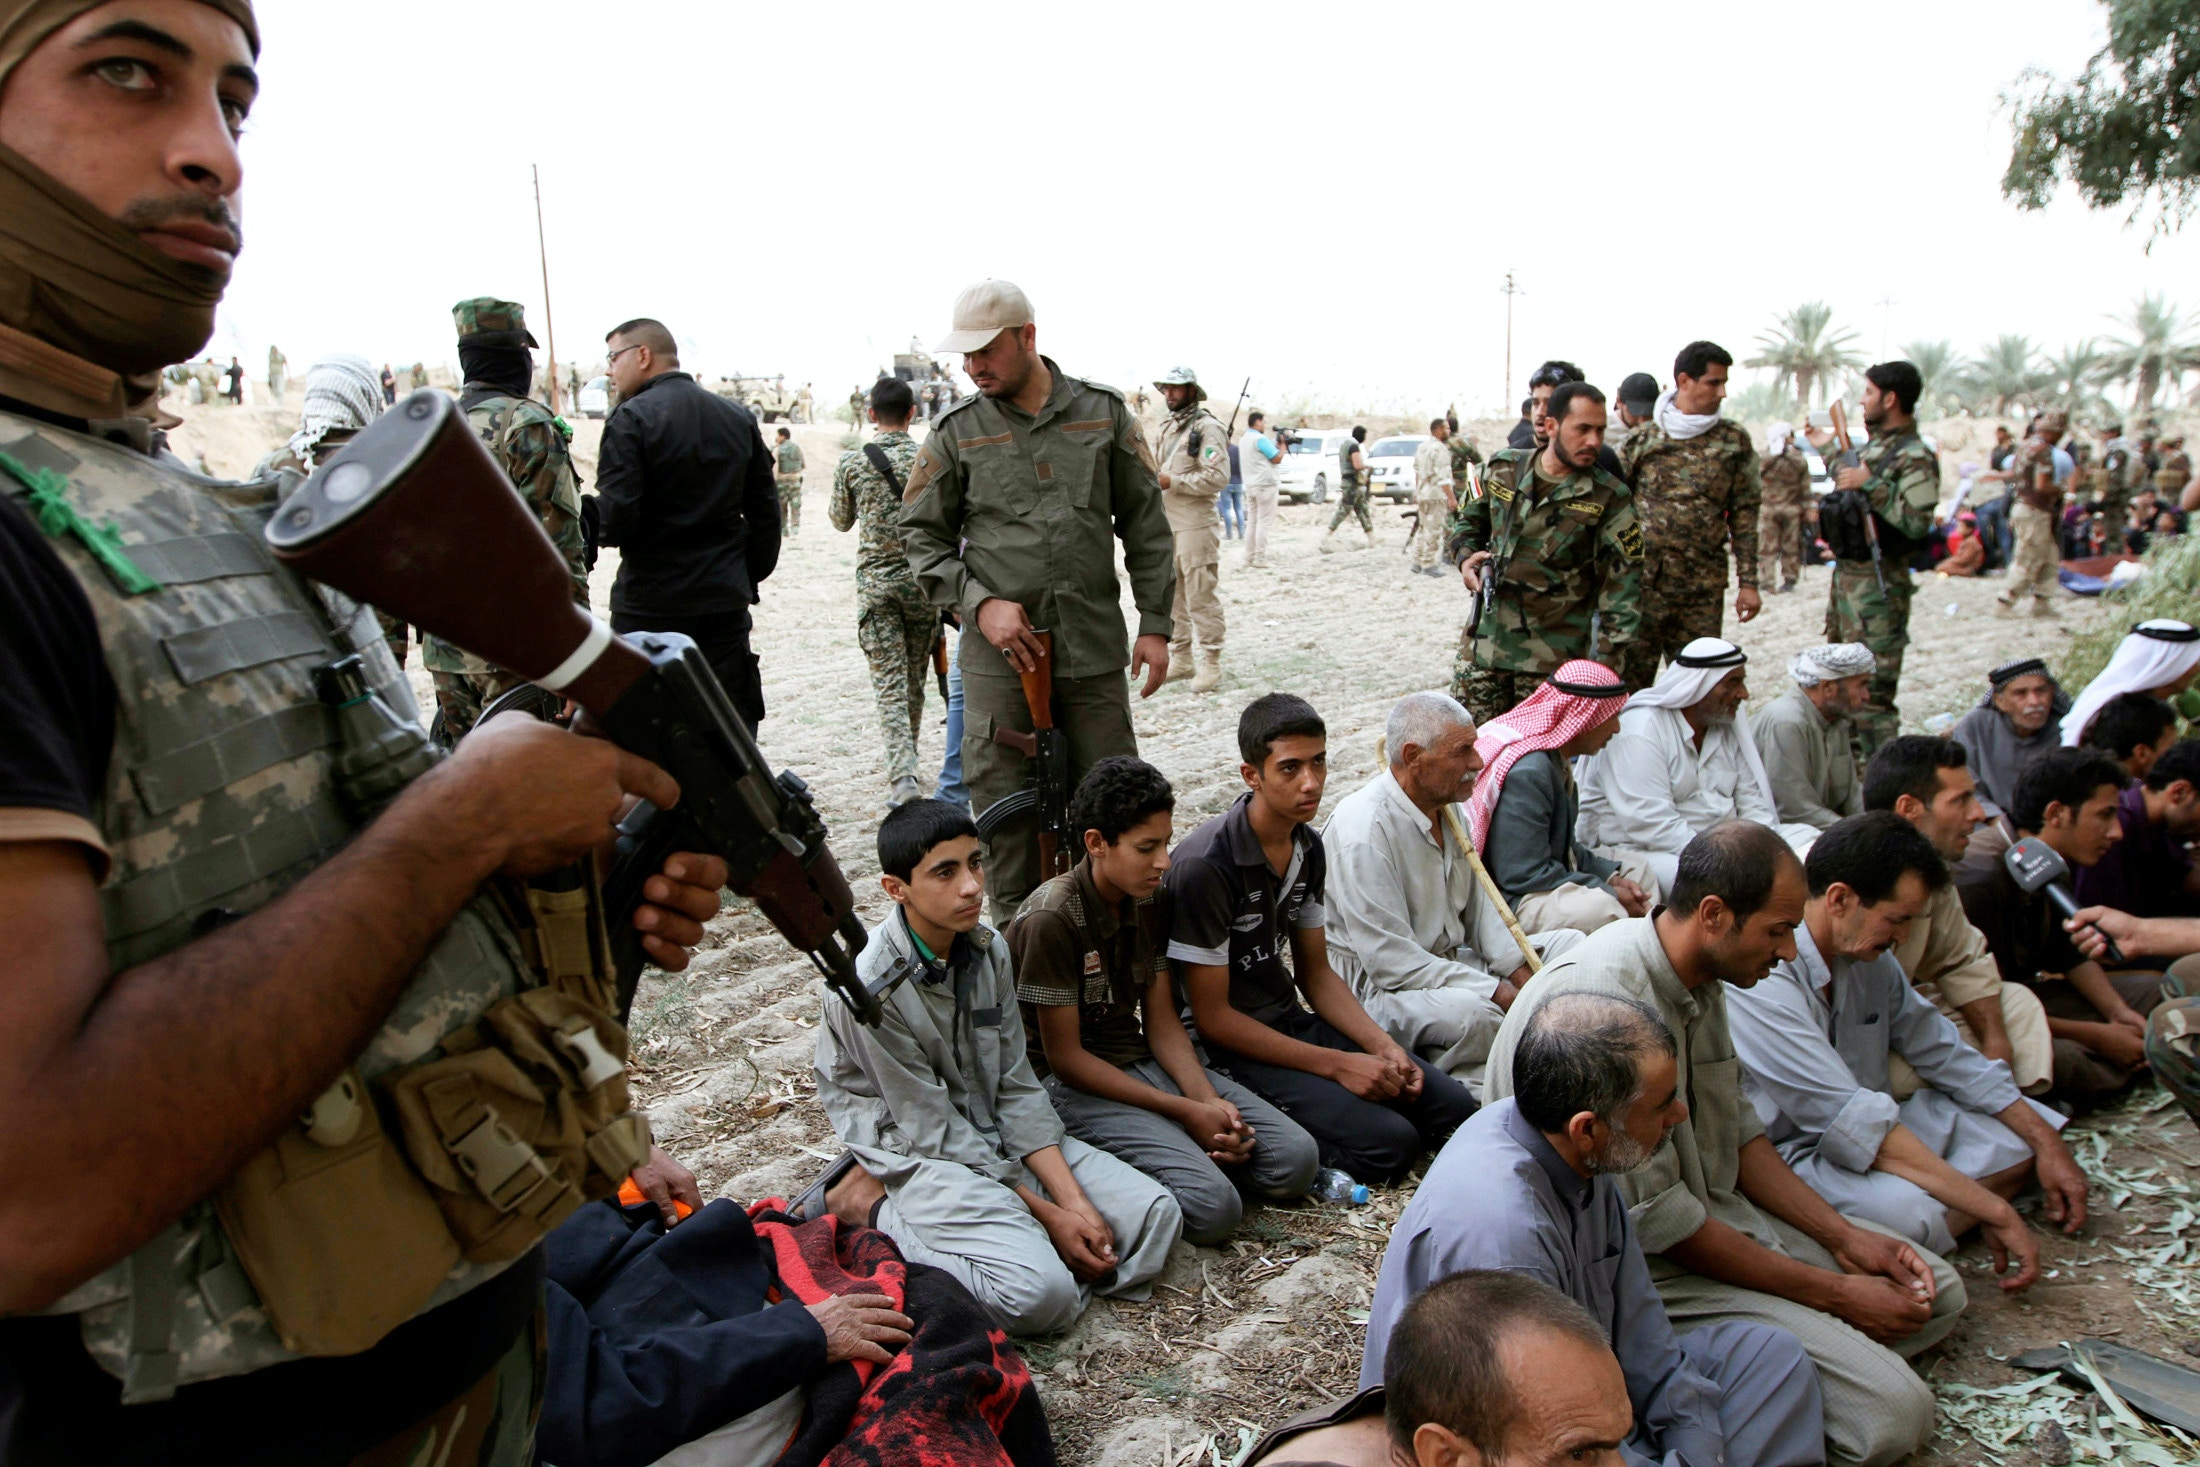 Iraqi families sit after surrendering to Shi'ite fighters and Iraqi Army after they took control of Jurf al-Sakhar from Islamist State militants, October 27, 2014. The families, who were in militant-held areas, surrendered to the army to be transported to safe areas and escape clashes between militants and Iraqi security forces, according to the Iraqi Army and the fighters. Picture taken October 27, 2014. REUTERS/Mahmoud Raouf Mahmoud (IRAQ - Tags: CIVIL UNREST POLITICS CONFLICT MILITARY SOCIETY TPX IMAGES OF THE DAY) - GM1EAAS1L0D01